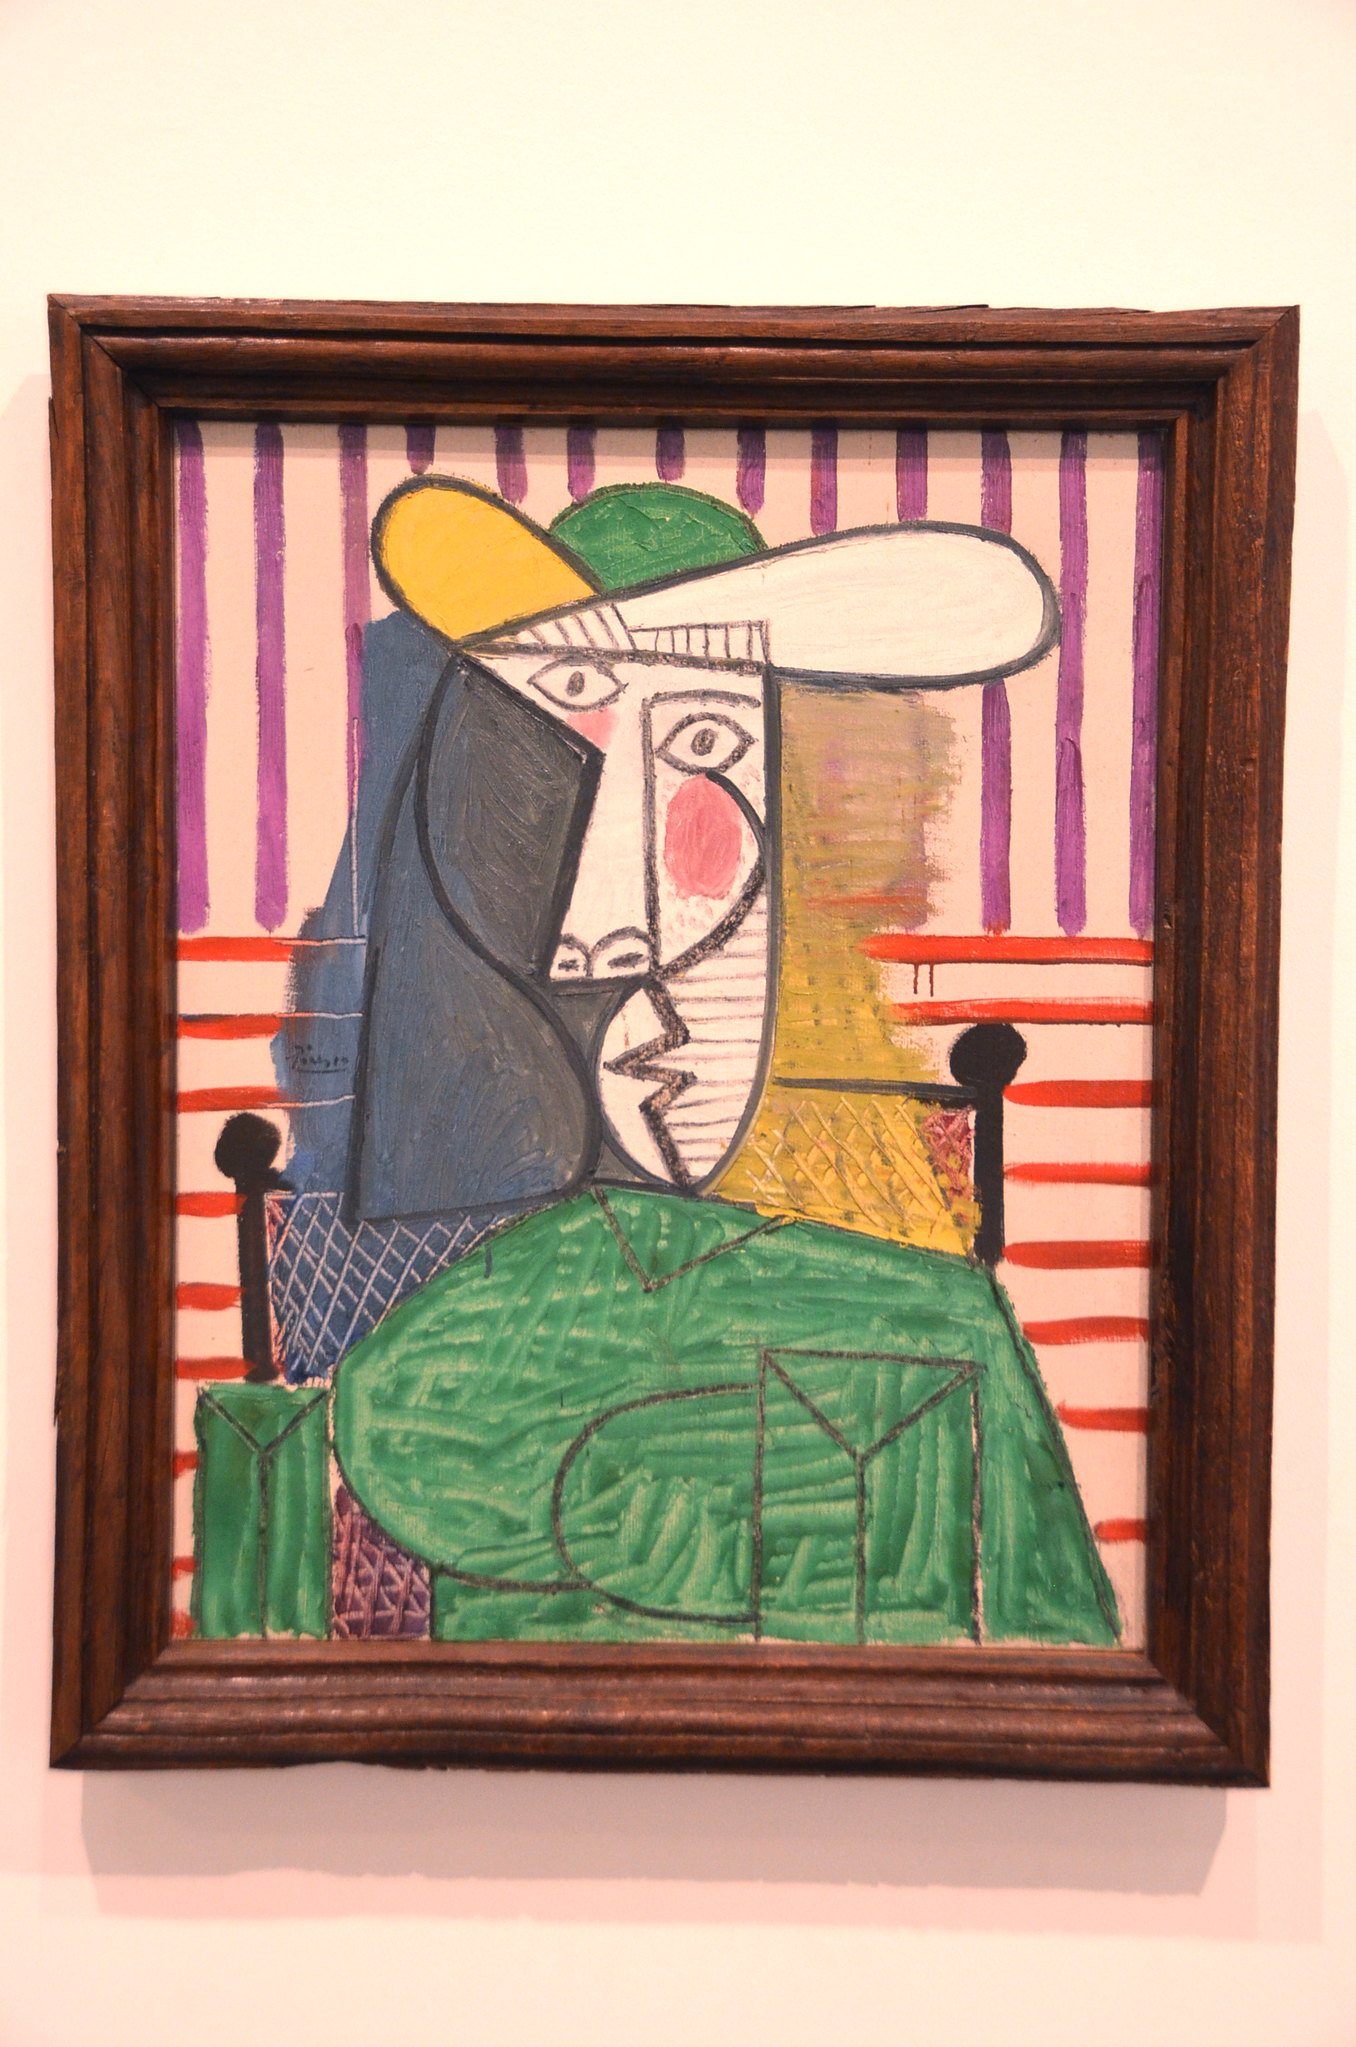 Picasso's Bust of a Woman